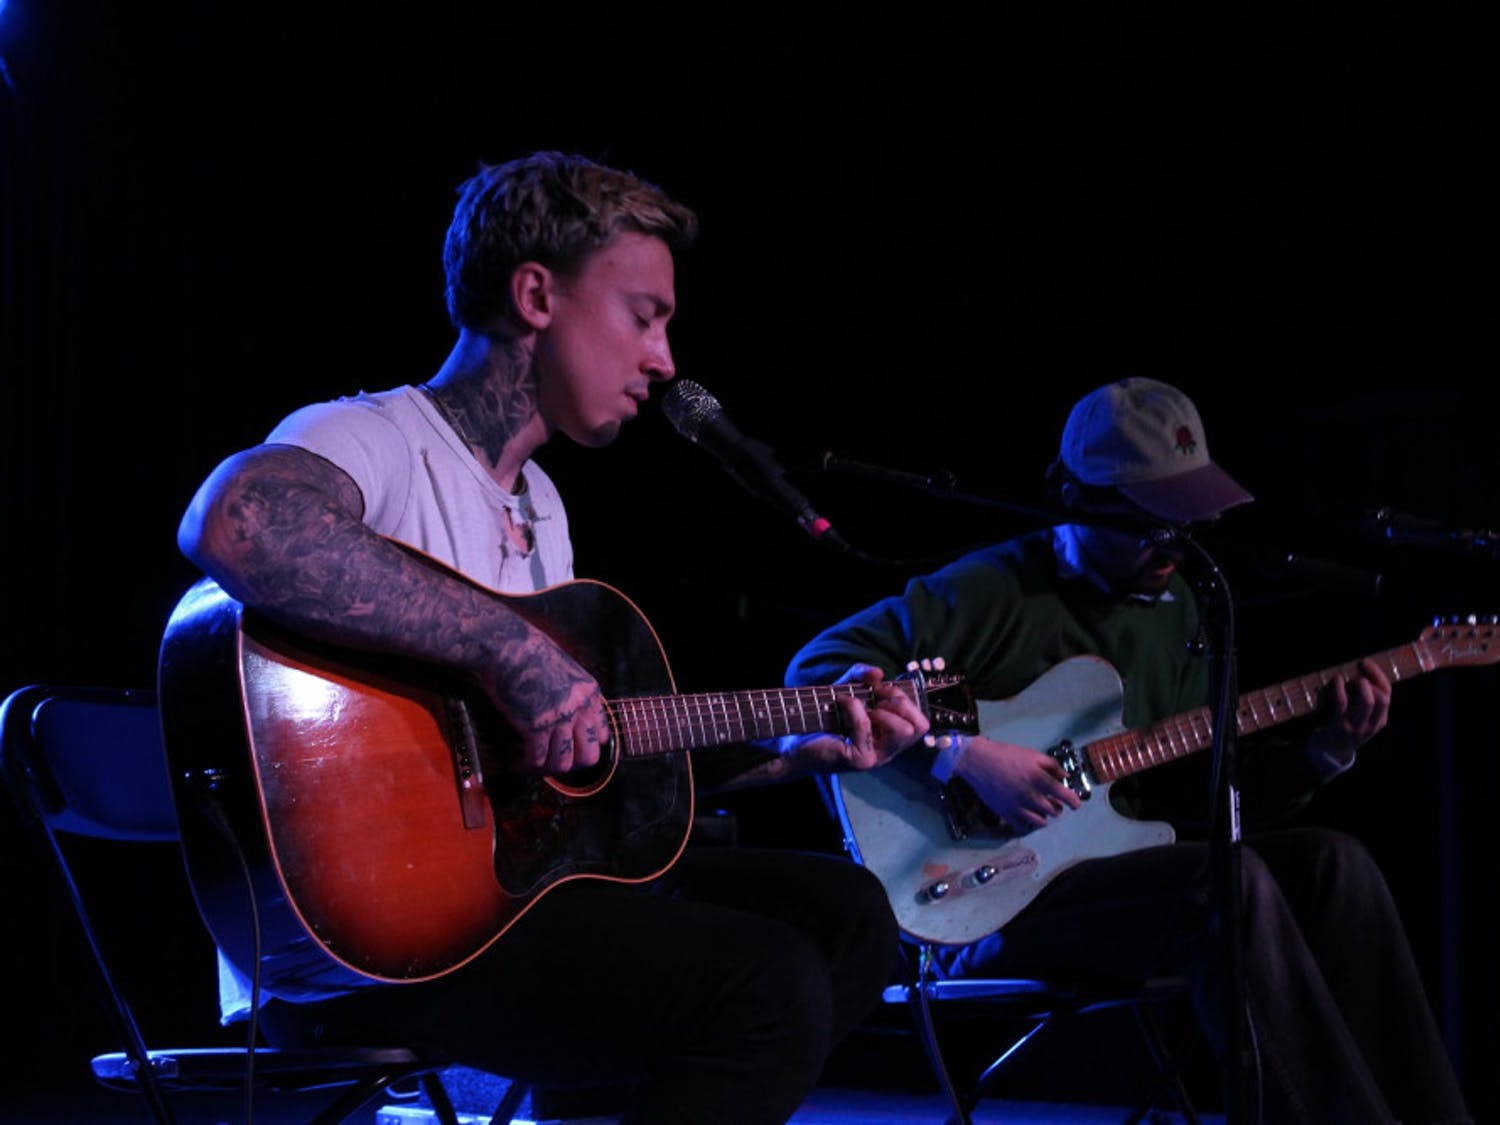 Musicians Noah Gundersen (left) and Harrison Whitford (right) collaborate during an acoustic performance on Sunday.